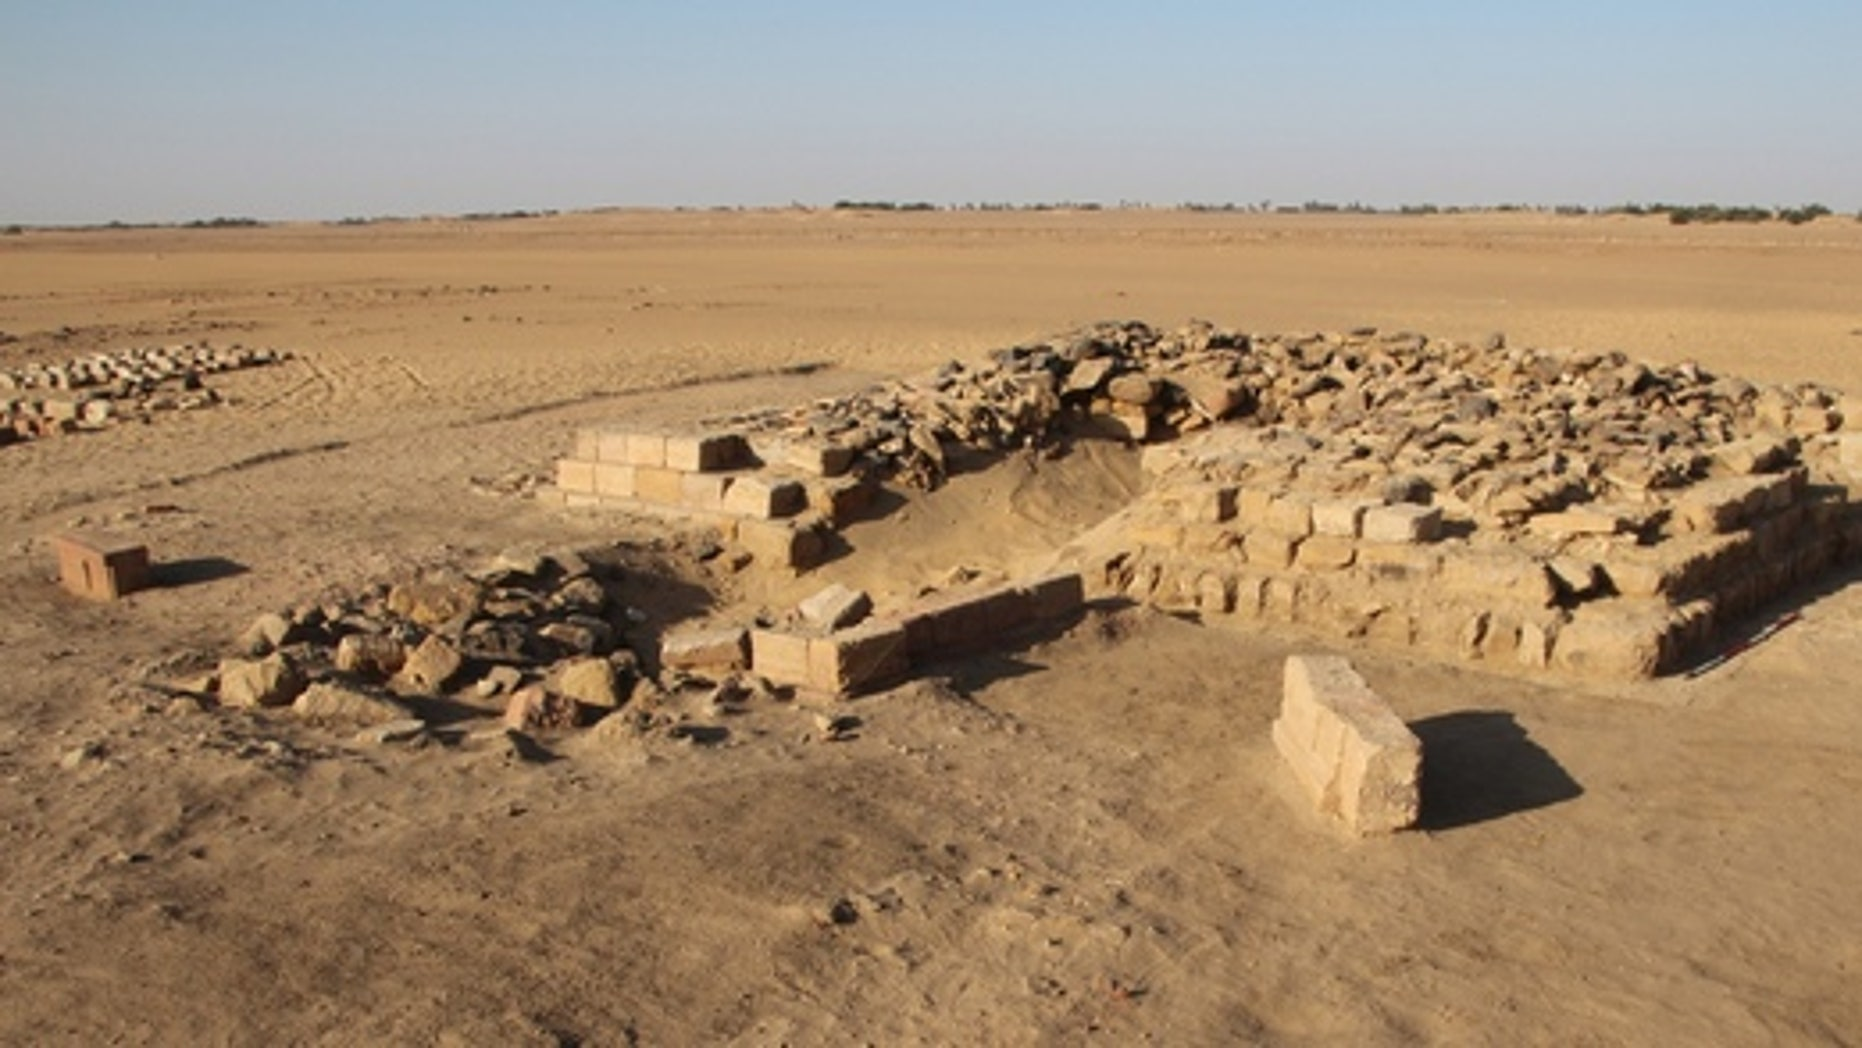 One of 16 pyramids uncovered in a cemetery in the ancient town of Gematon in Sudan. The pyramid likely rose more than 39 feet in height.